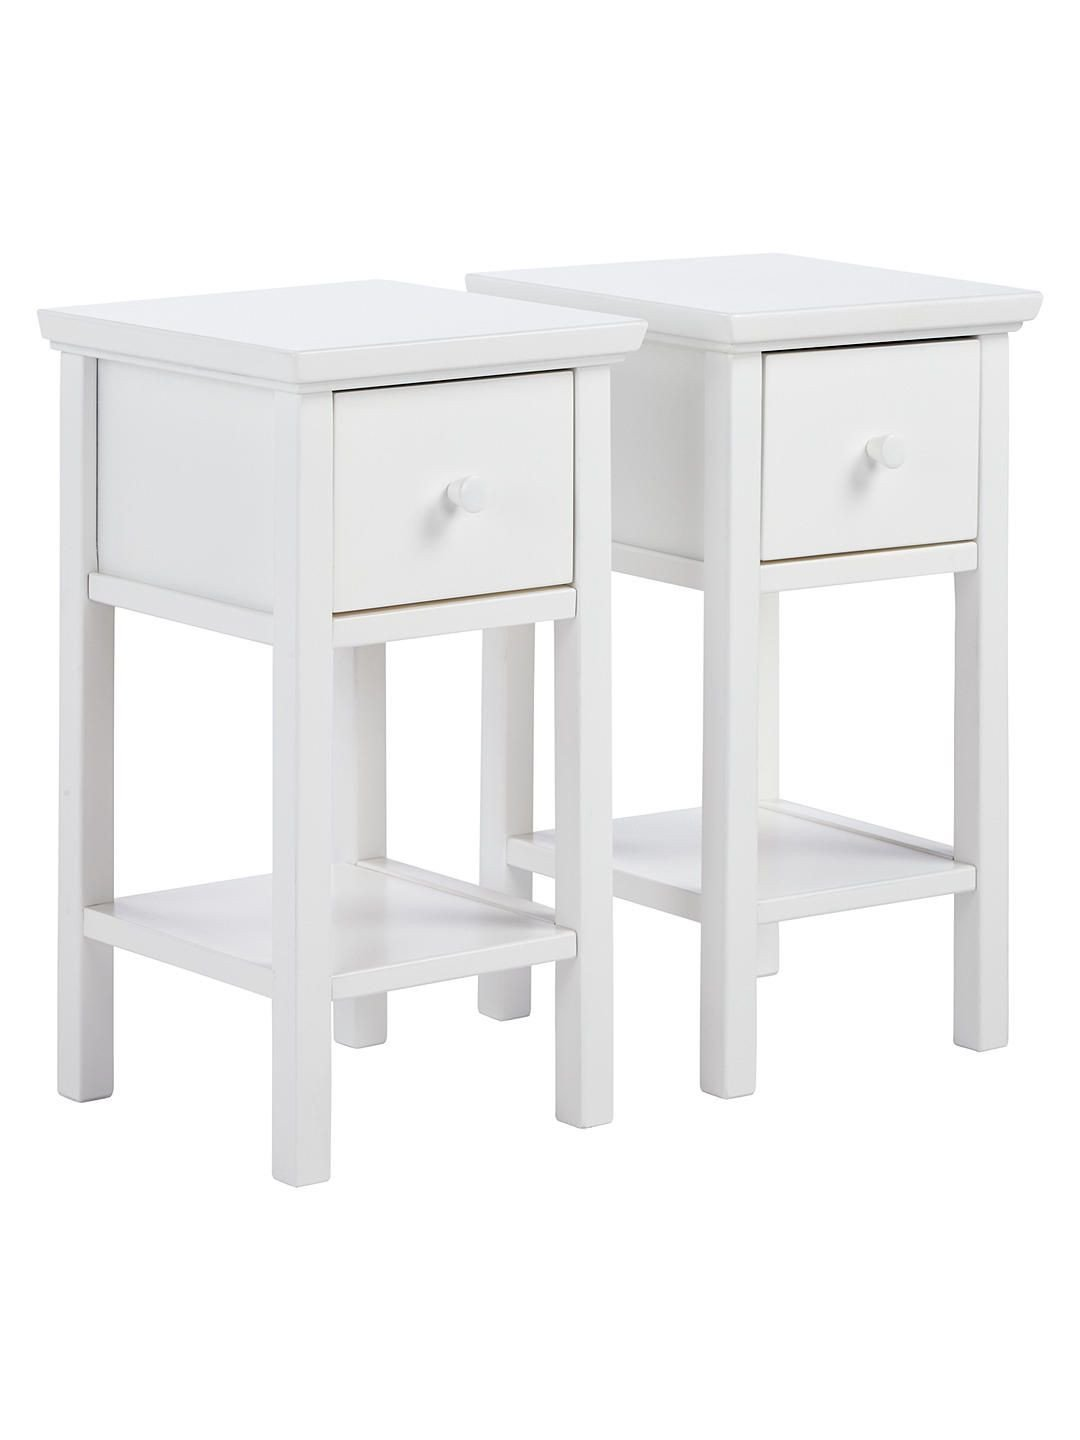 White Bedroom End Tables Awesome John Lewis & Partners Wilton Set Of 2 Bedside Tables Grey